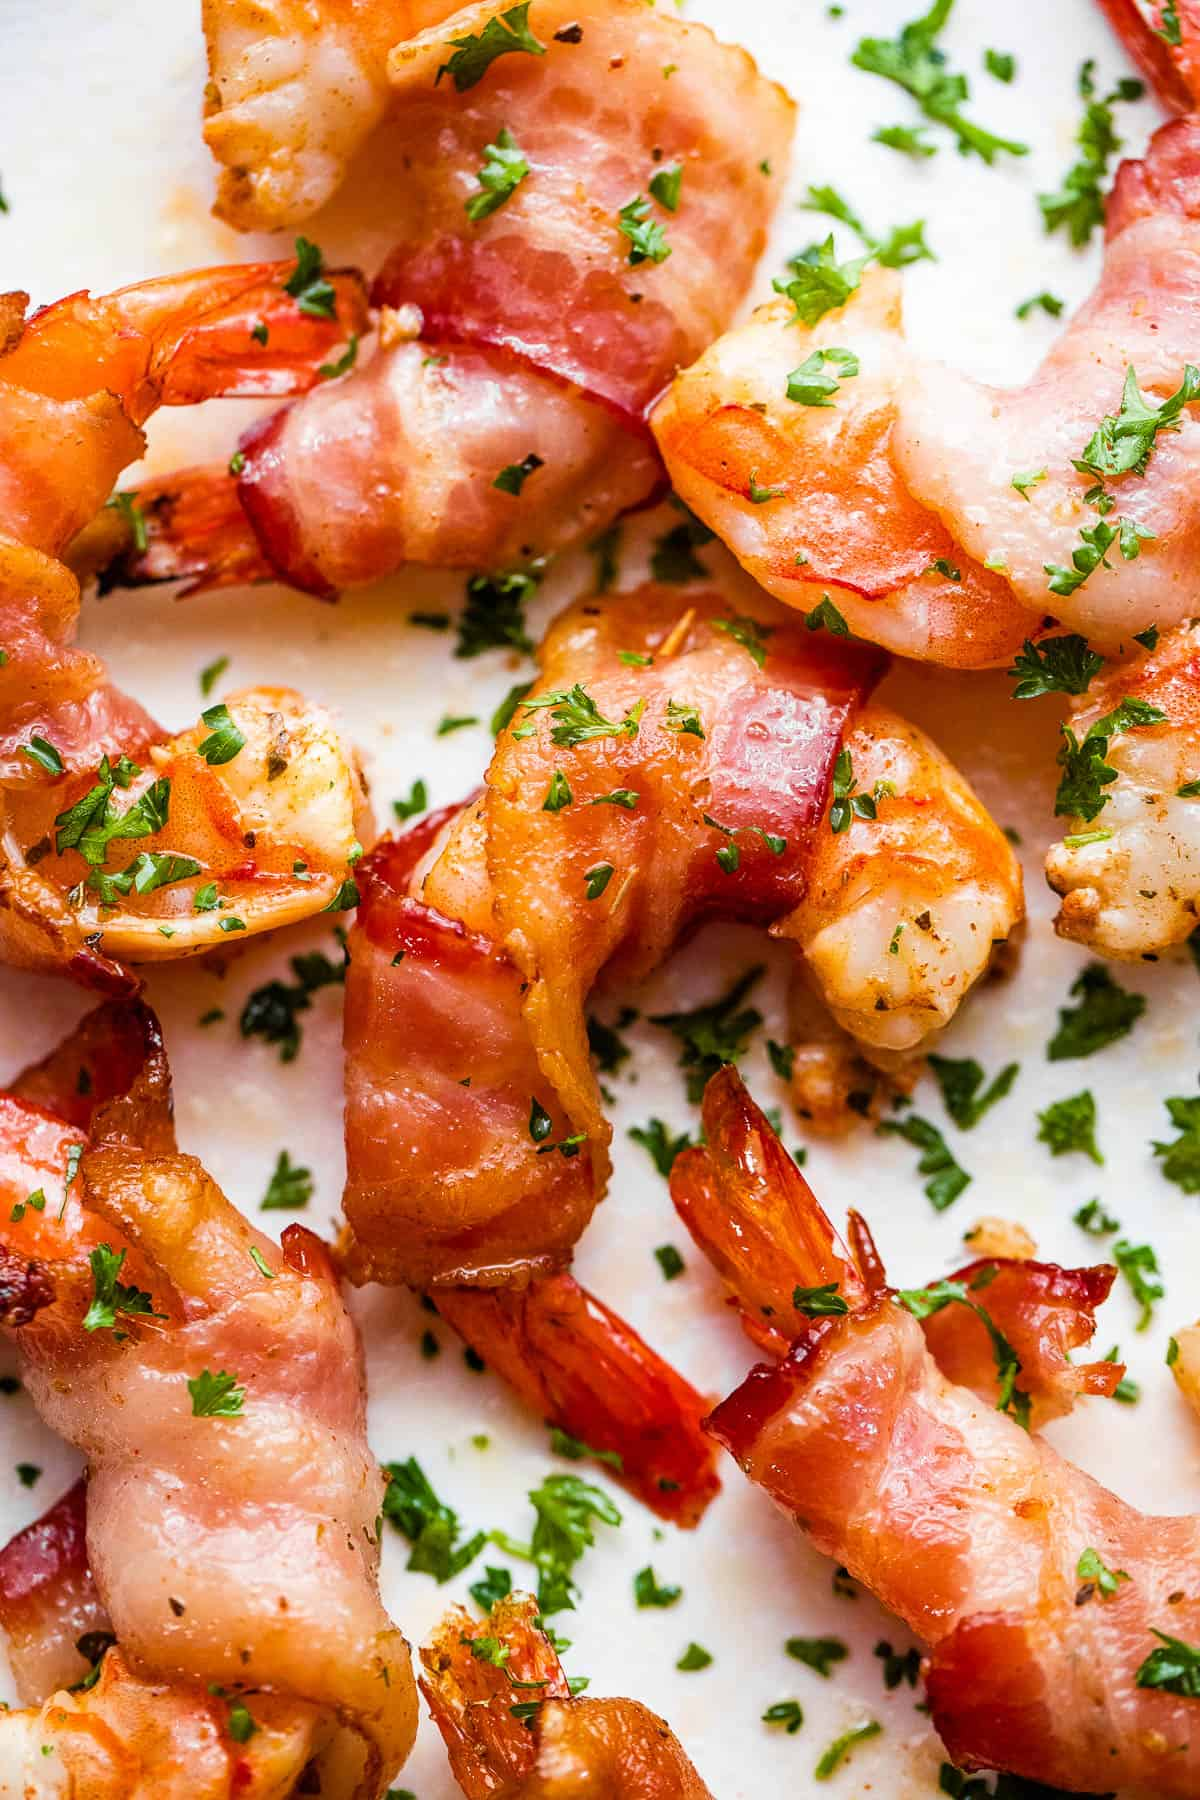 bacon wrapped shrimp arranged on a white plate and garnished with parsley